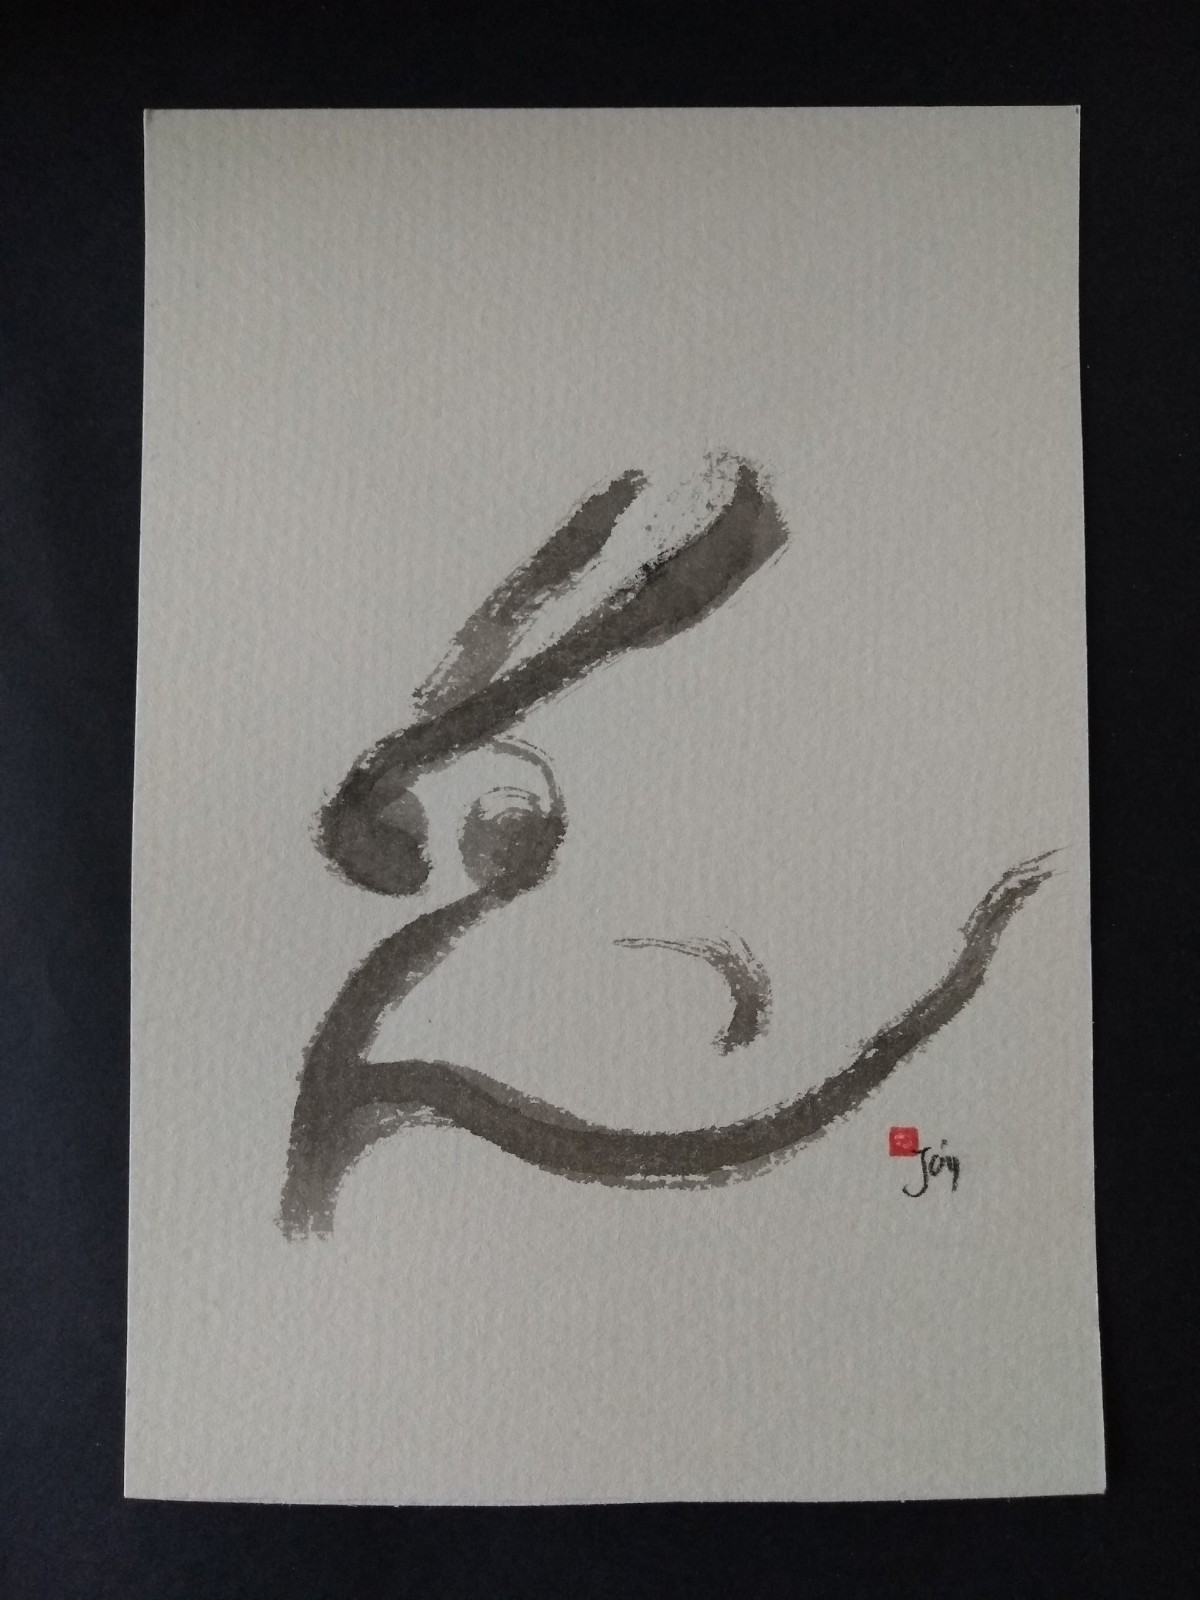 Hare. Gentle, quiet, elegant.